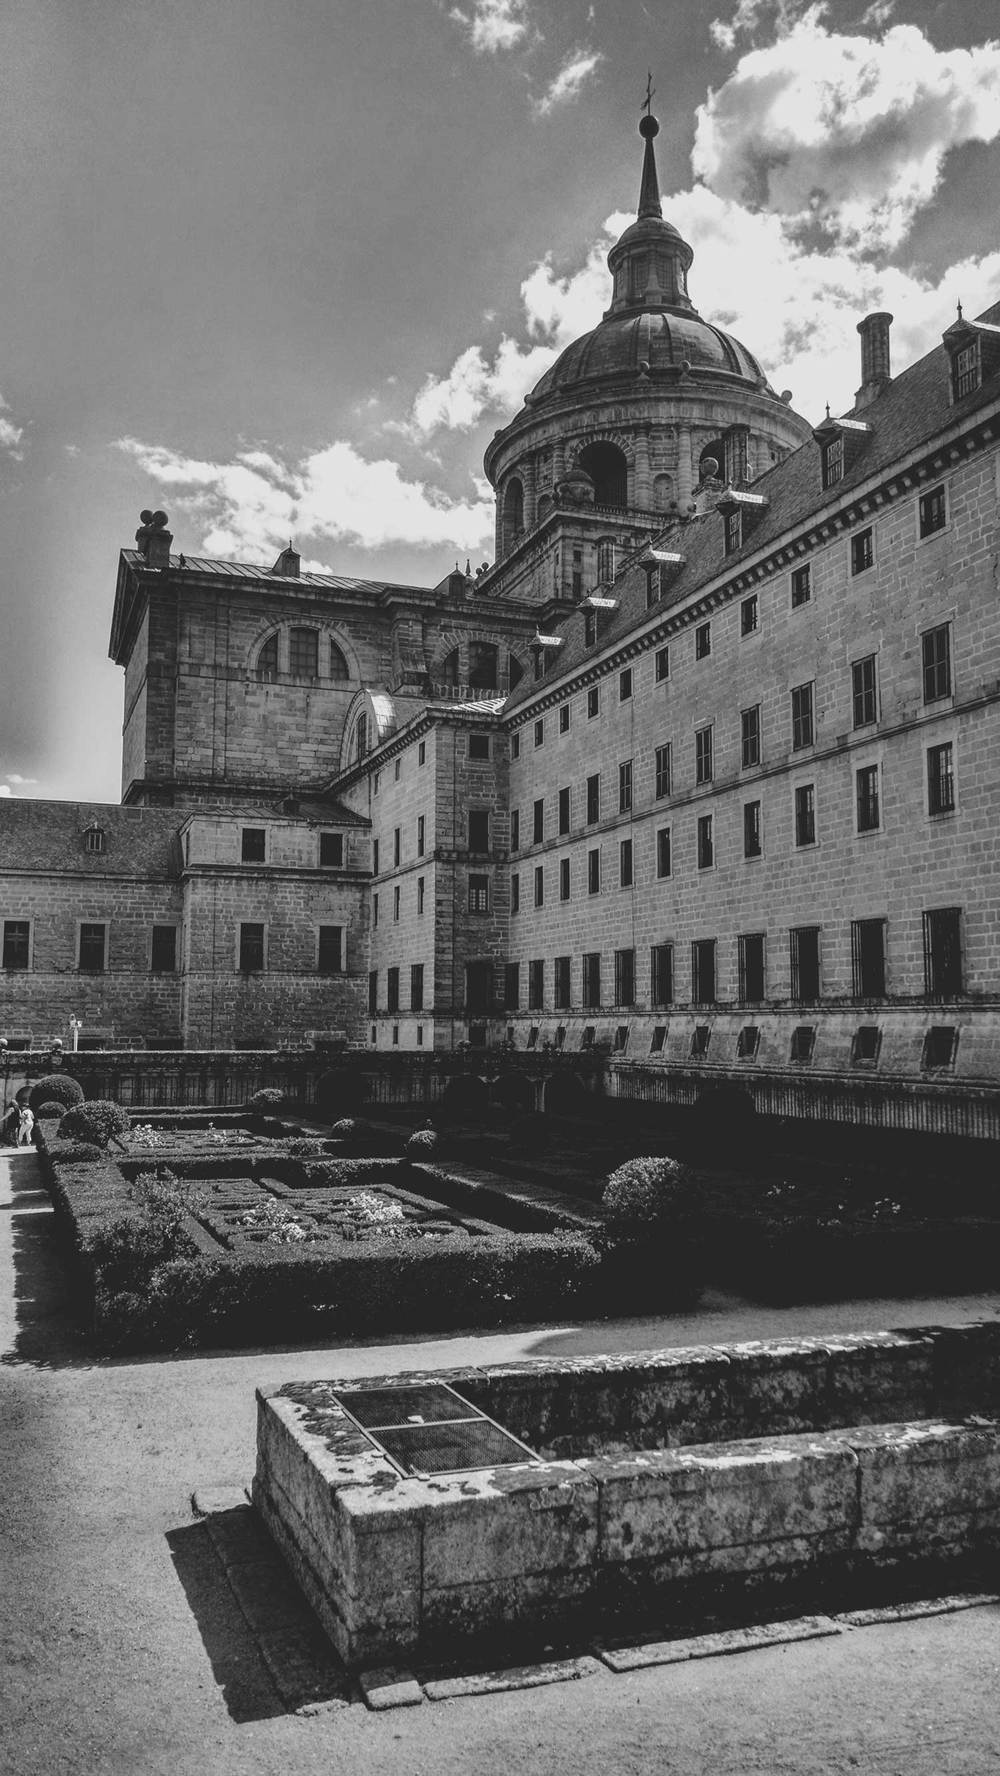 OG-monastery_el_escorial-Garden_Madrid_Spain-062015-WEB-1500.jpg